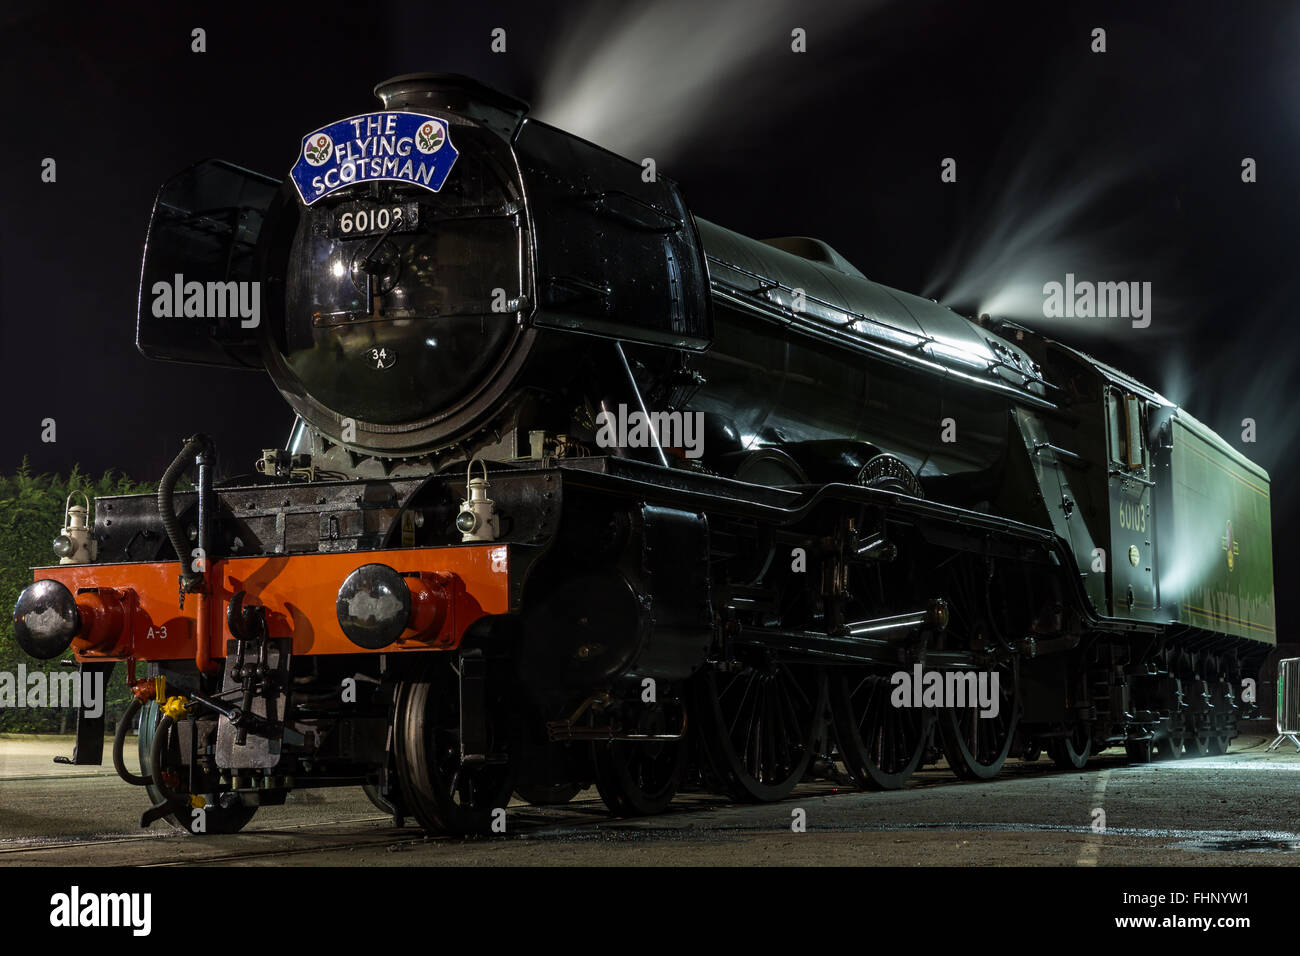 The Flying Scotsman, National Railway Museum in York - Stock Image